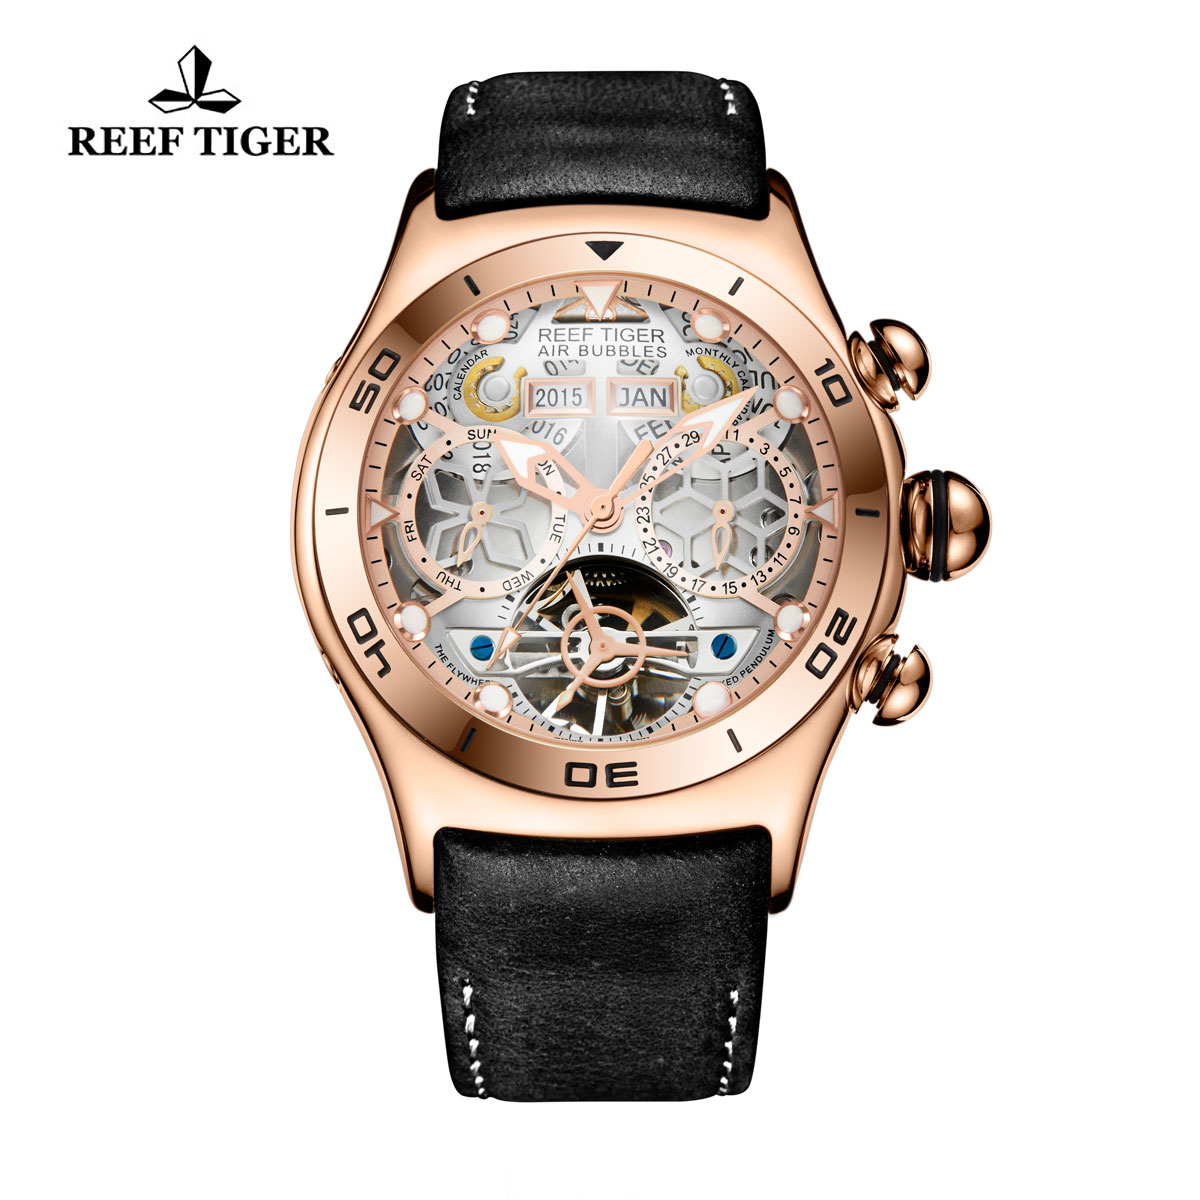 Reef Tiger Air Bubble Sport Casual Watches Automatic Watch Rose Gold Case Leather Strap RGA703-PWB